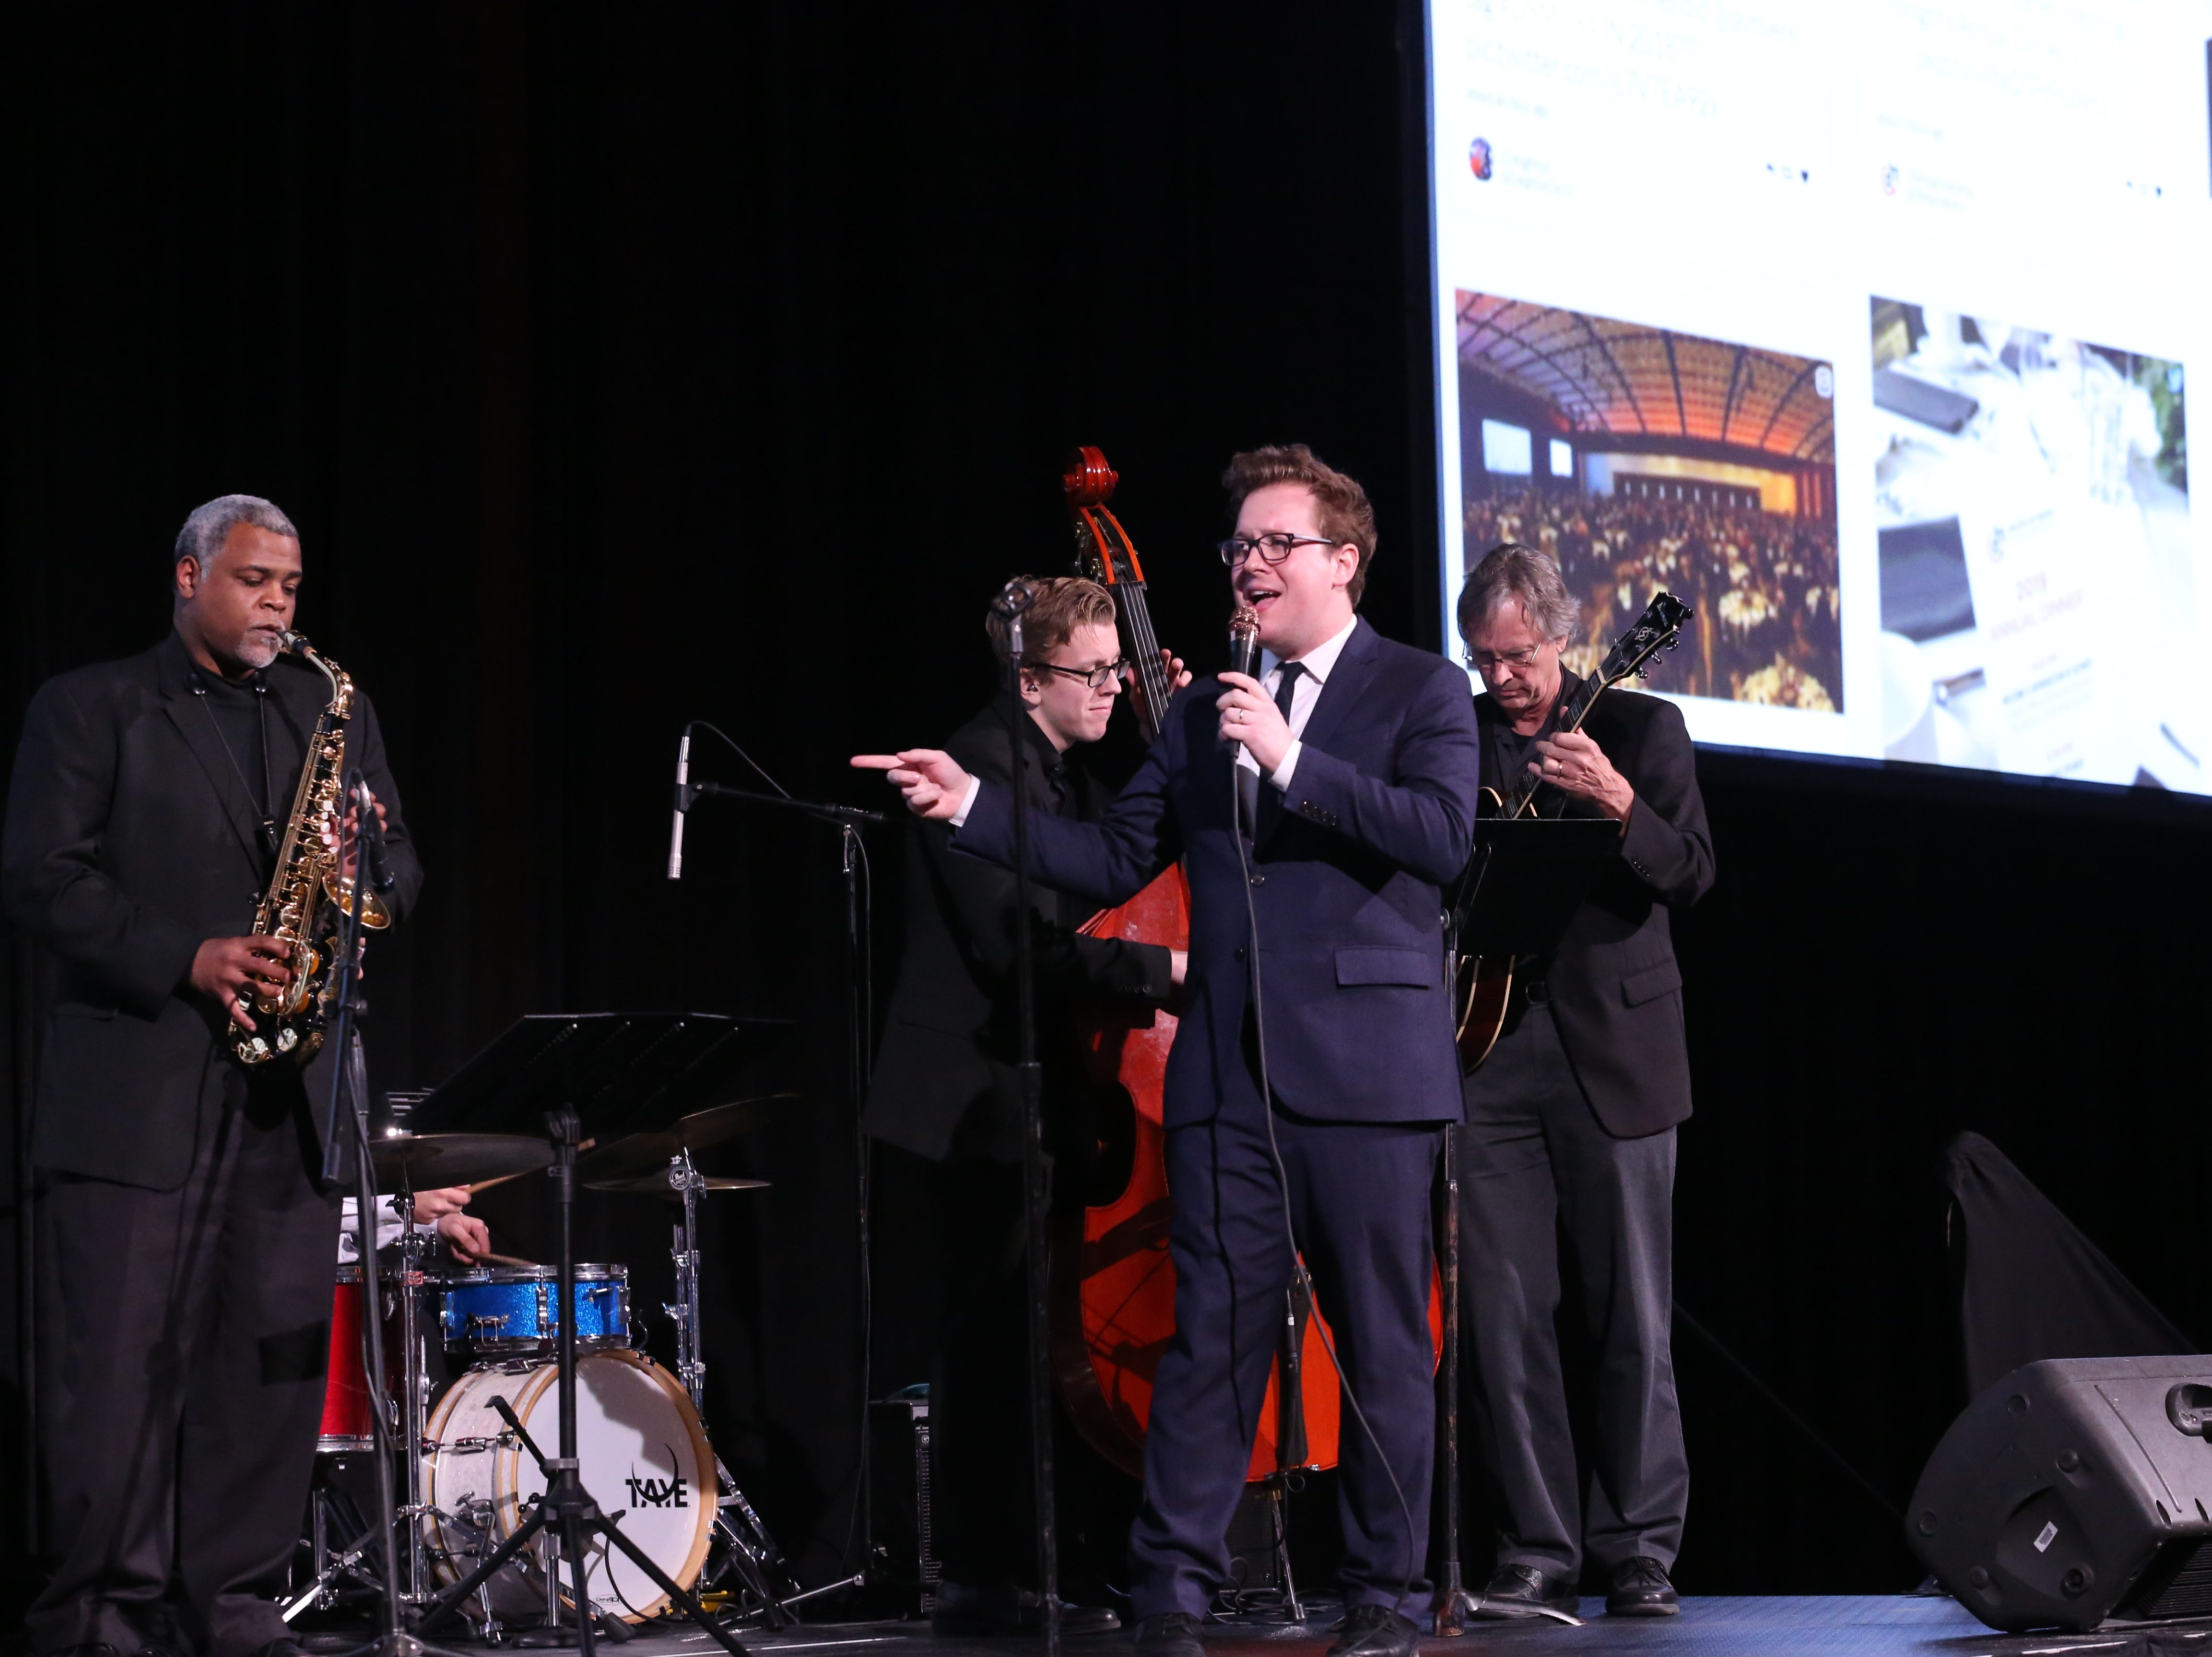 Max Wellman provided the pre-program and dinnertime entertainment at the Greater Des Moines Partnership's Annual Dinner on January 17, 2019 at the Iowa Events Center.